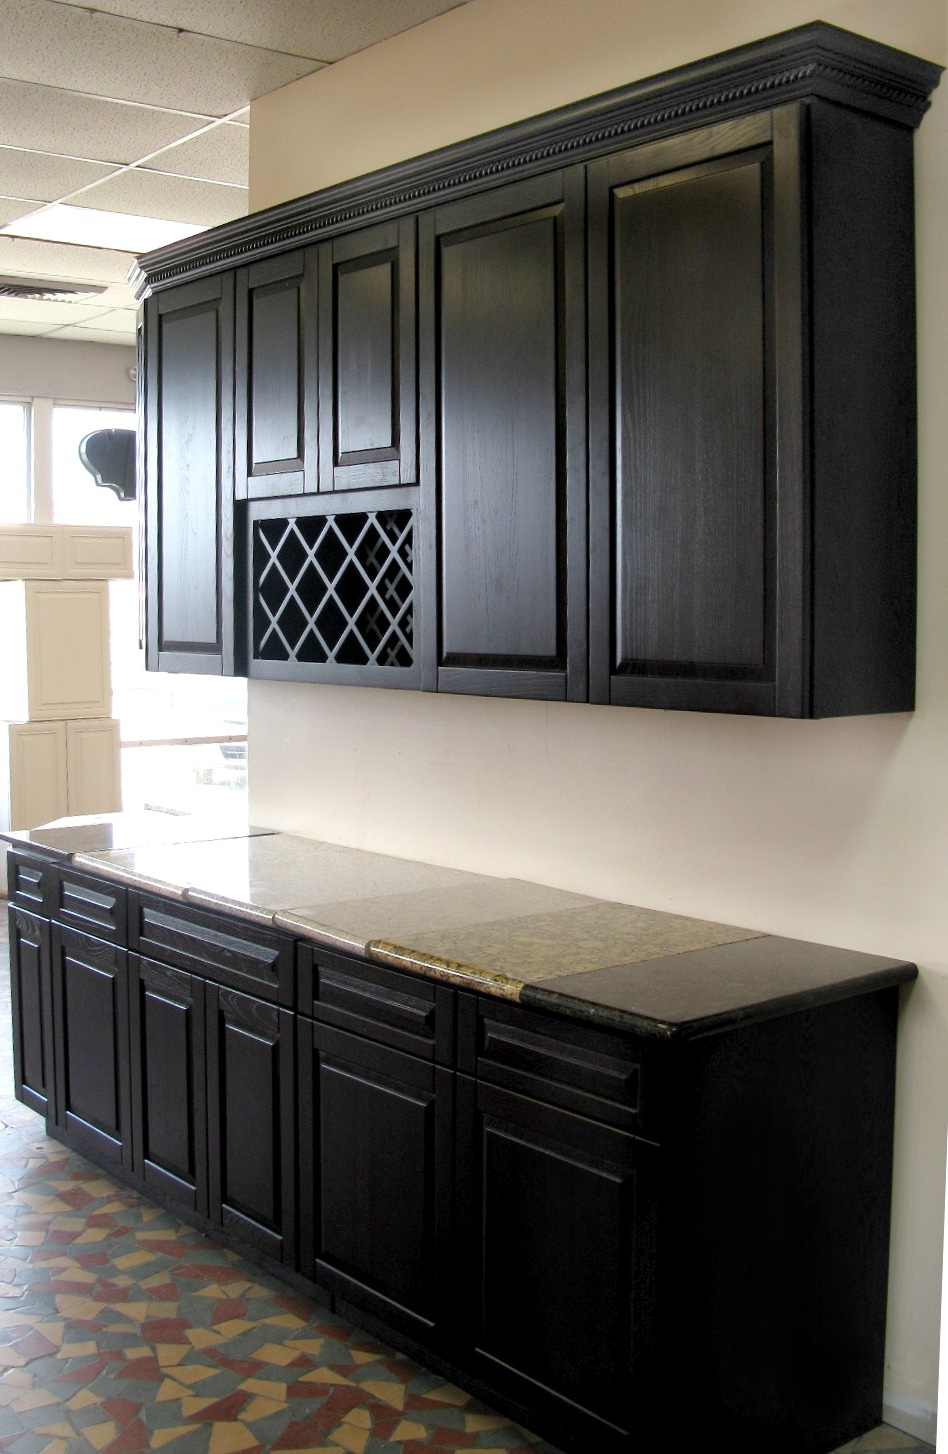 Cabinets for kitchen photos black kitchen cabinets for Black cabinet kitchen designs